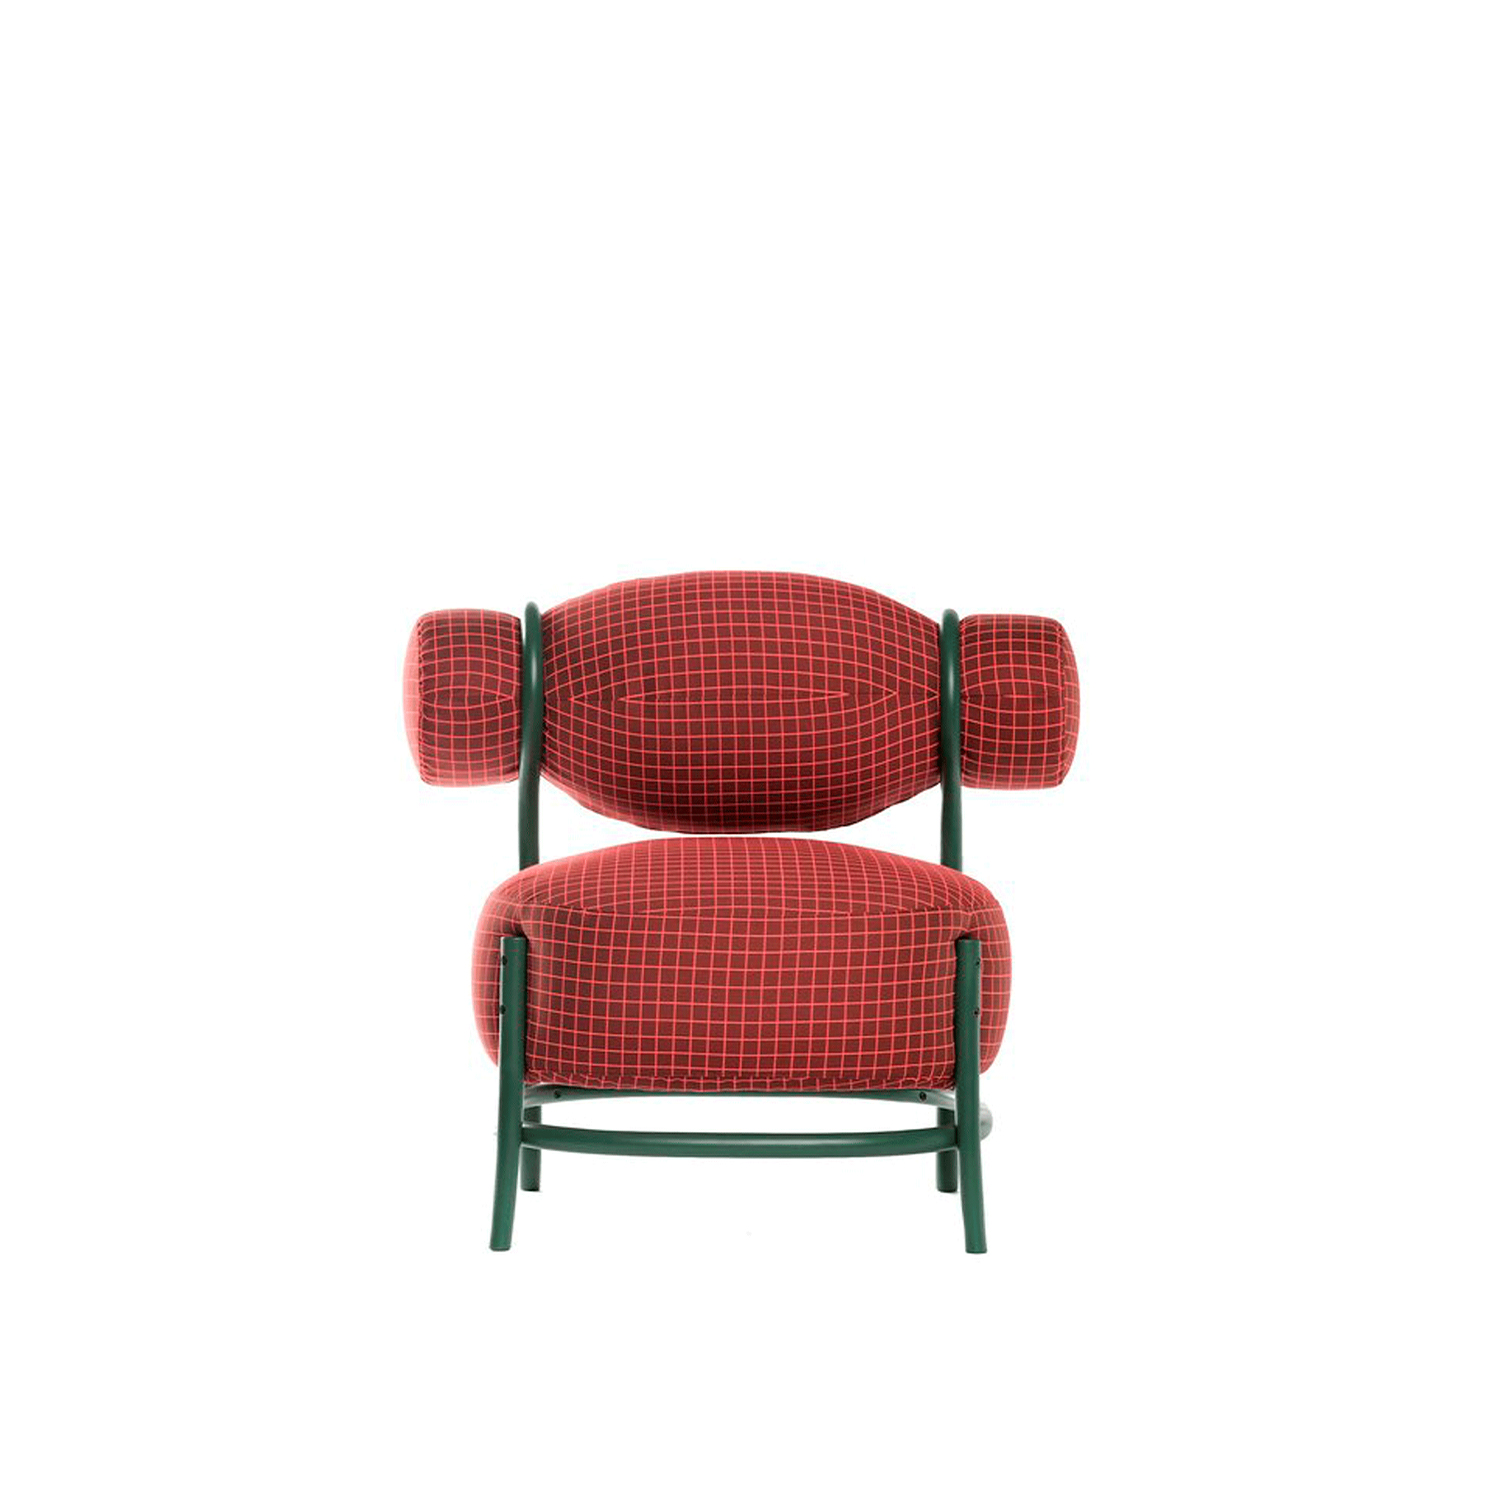 Chignon Lounge Chair - This stunning accent chair is modern and playful with elegant lightness in the proportions and a bold chromatic choice. The thick seat and backrest are covered with a vivid red fabric and enclosed in a wooden structure with details in curled beechwood, a trademark of Viennese-style furniture. The result is a feminine and refined silhouette that poetically evokes the shape of a hairdo. An elegant piece of timeless allure, this chair is ideal for both residential and public places.   | Matter of Stuff